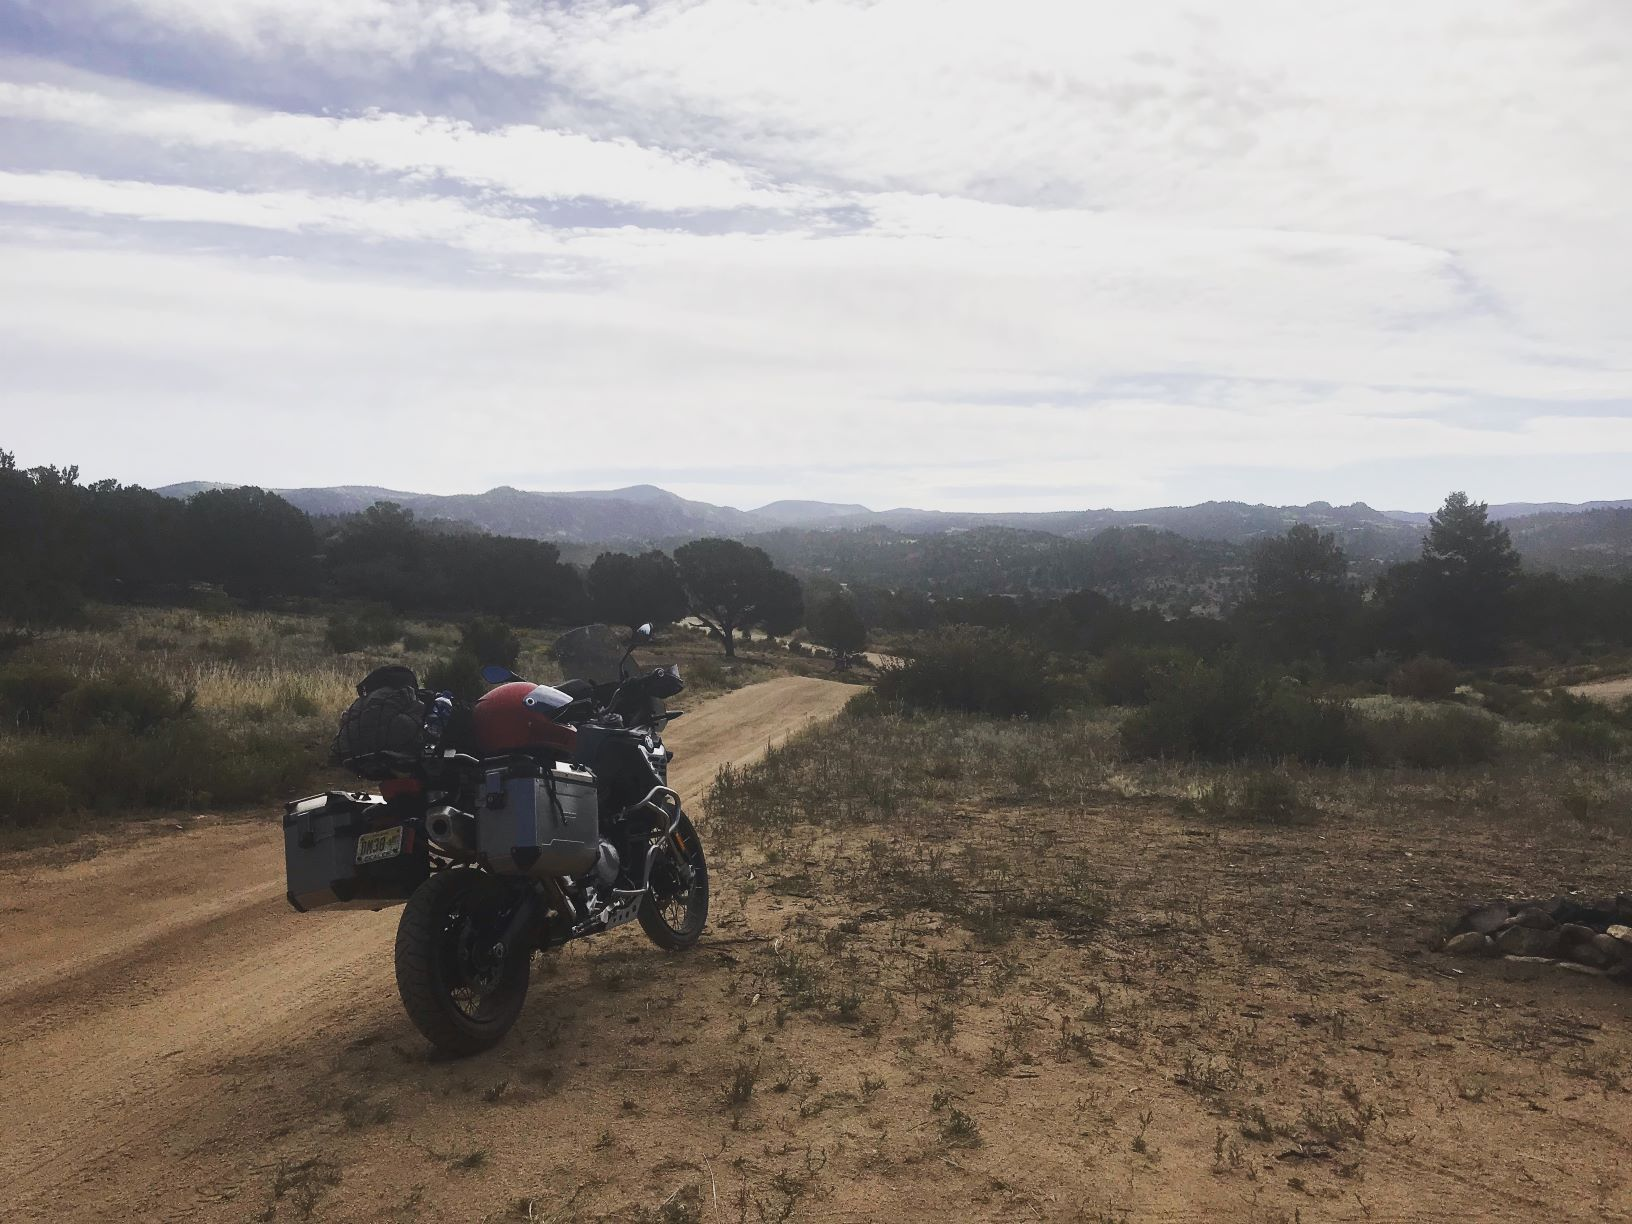 5 Things I Learned as a First Time Adventure-Tourer